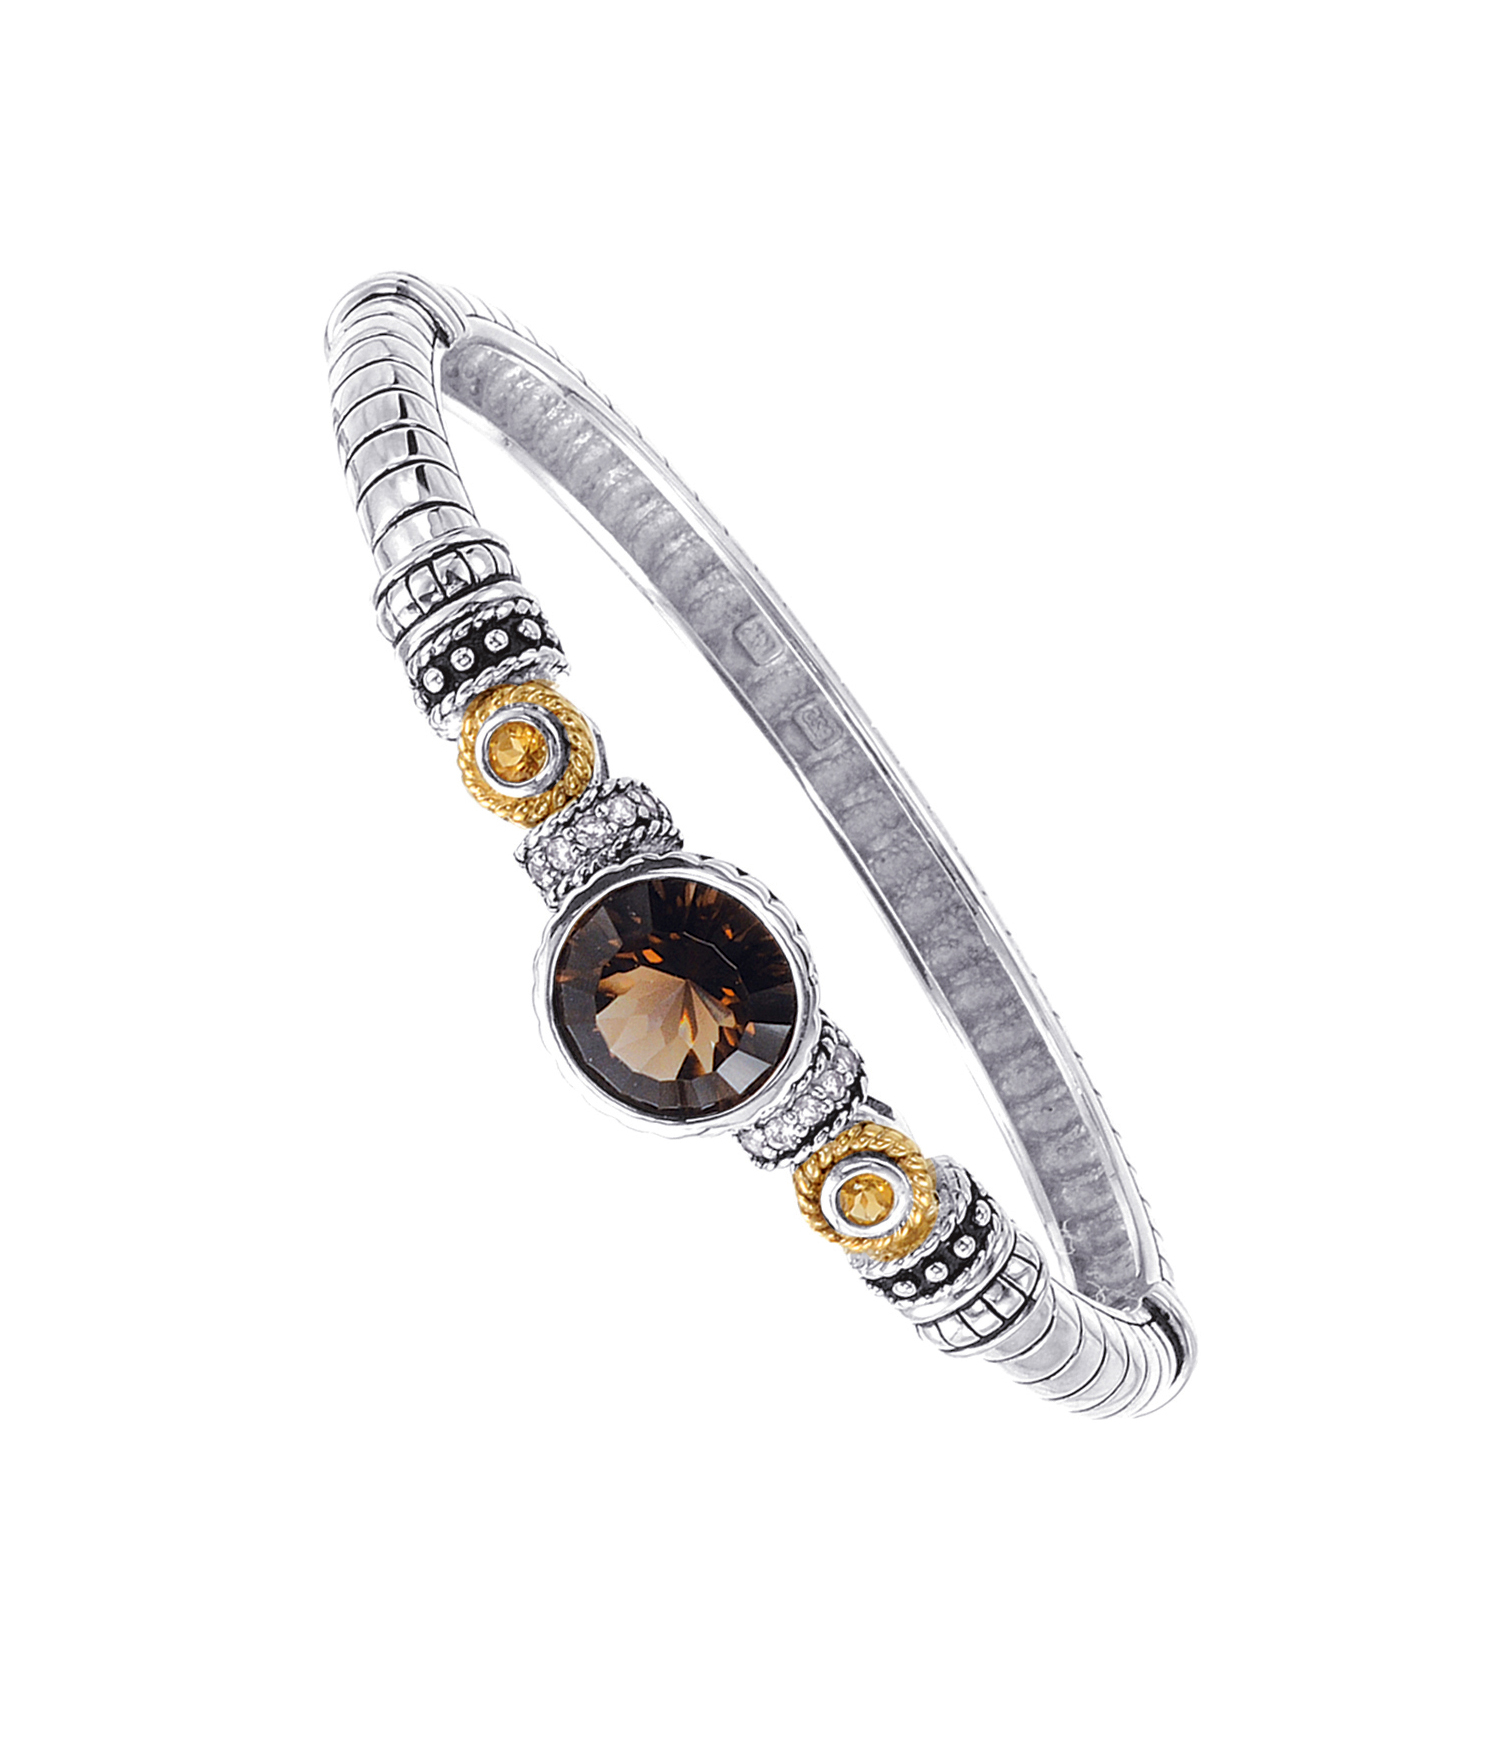 Jewelry - Alesandro Menegati 14K Accented Sterling Silver Bangle with Blue and White Topaz, Smoky Quartz and C.